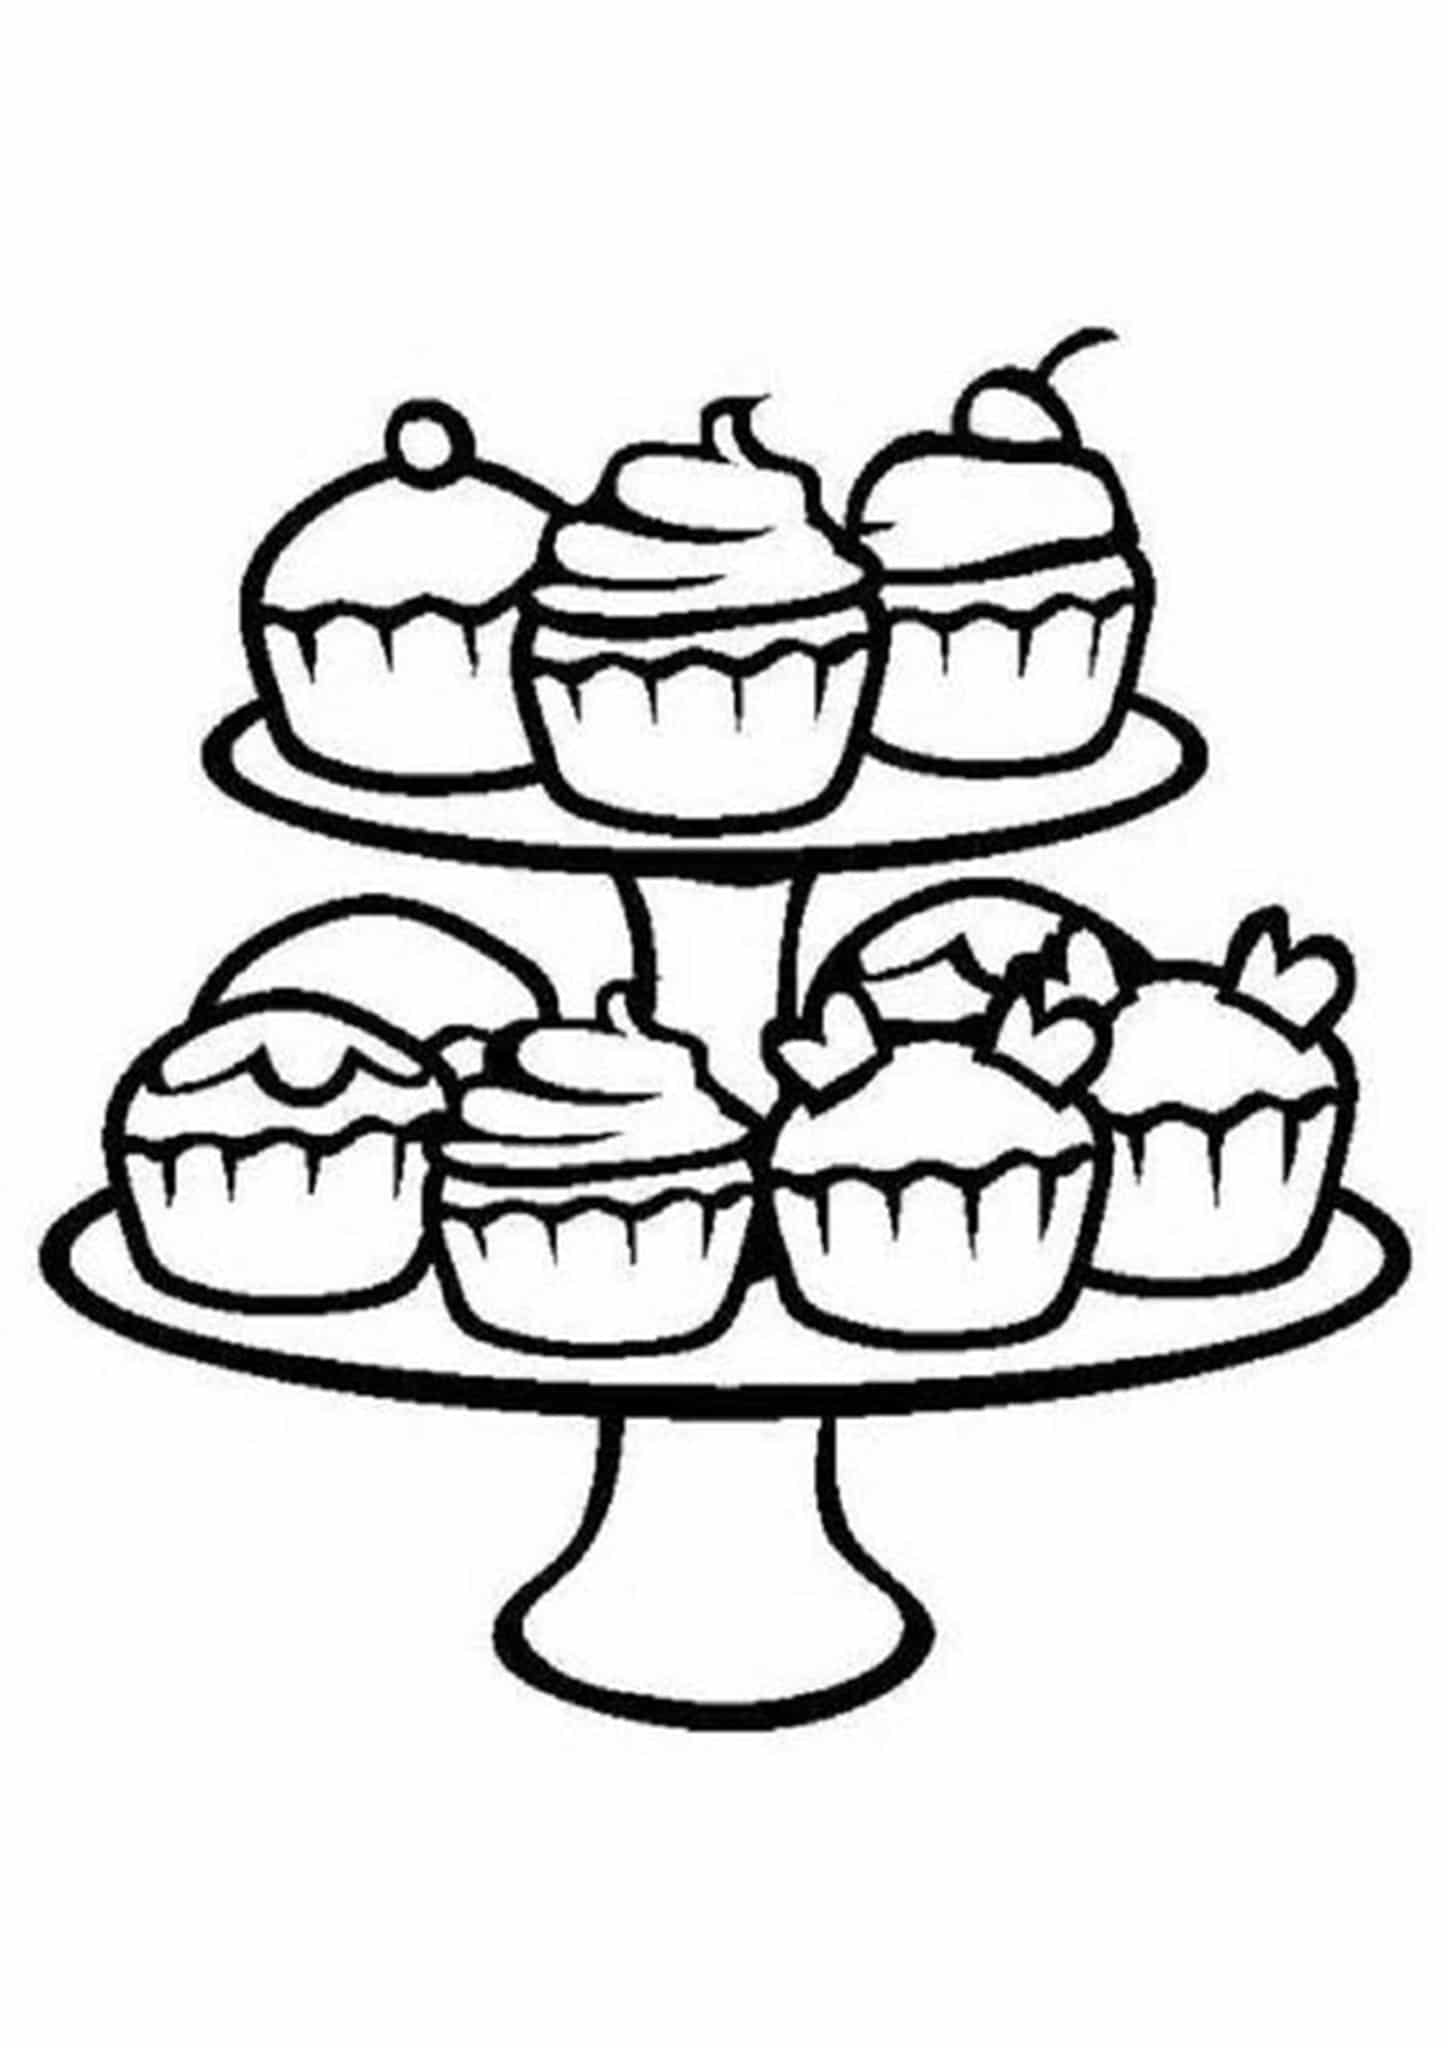 easy cupcake coloring pages cupcakes drawing at getdrawings free download pages coloring cupcake easy